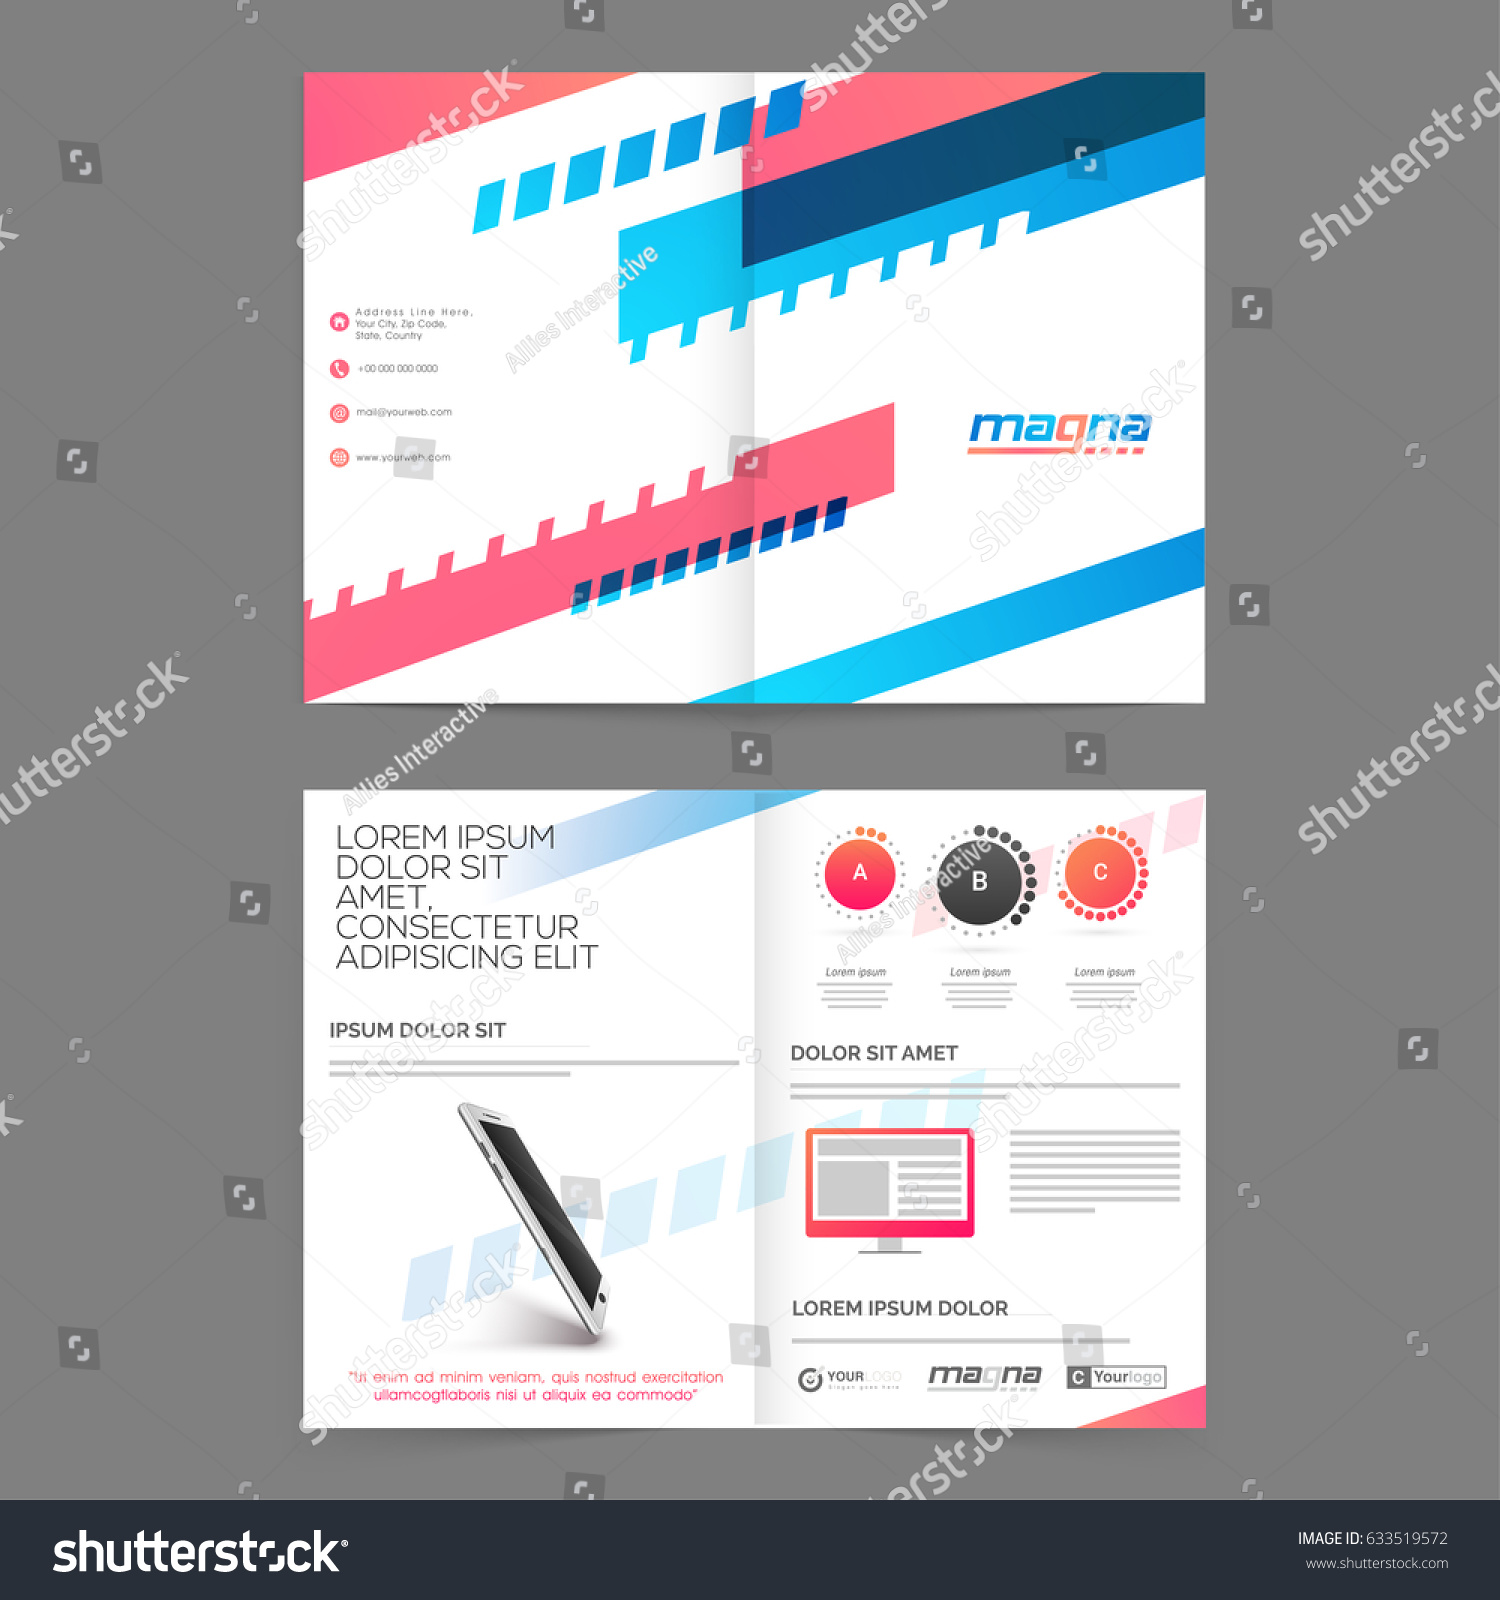 Four Pages Brochure Template Presentation Modern Stock Vector - Four page brochure template